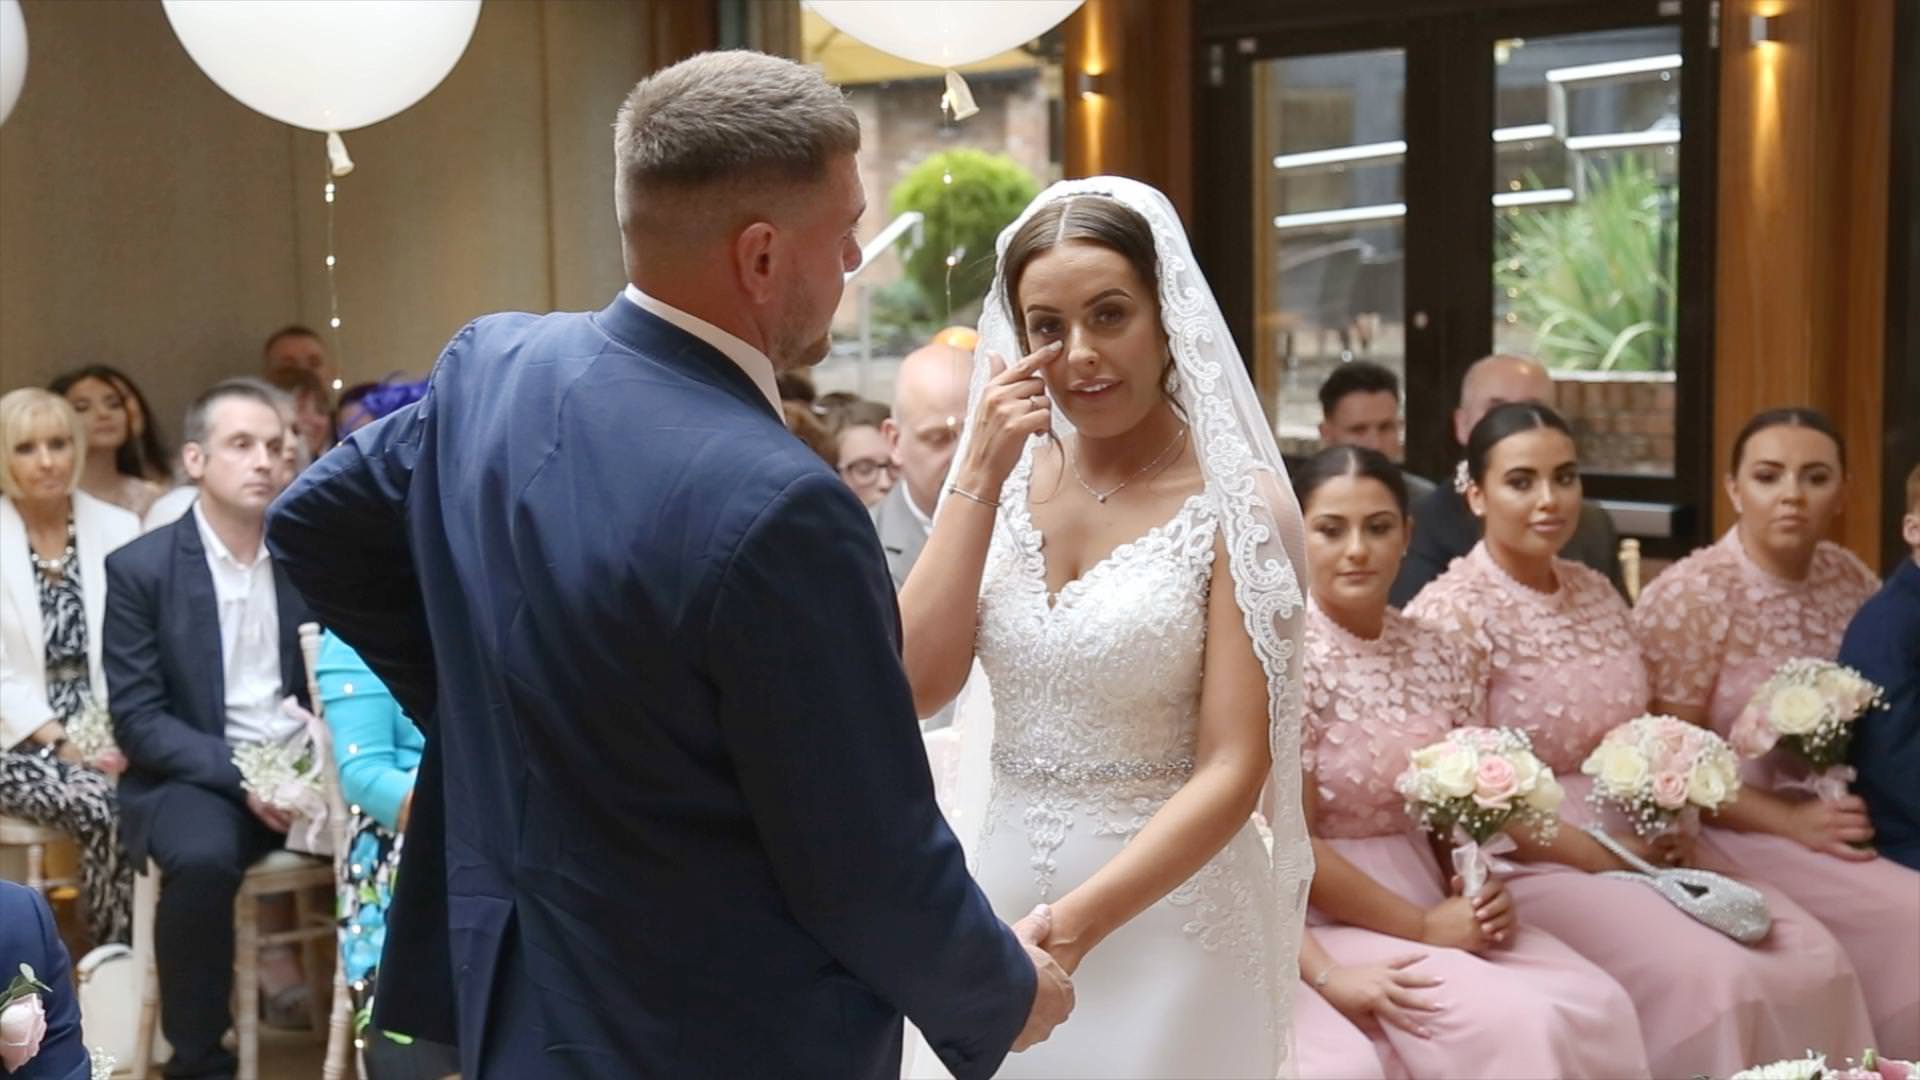 video still of a bride wiping away a tear during a Moddershall Oaks indoor ceremony